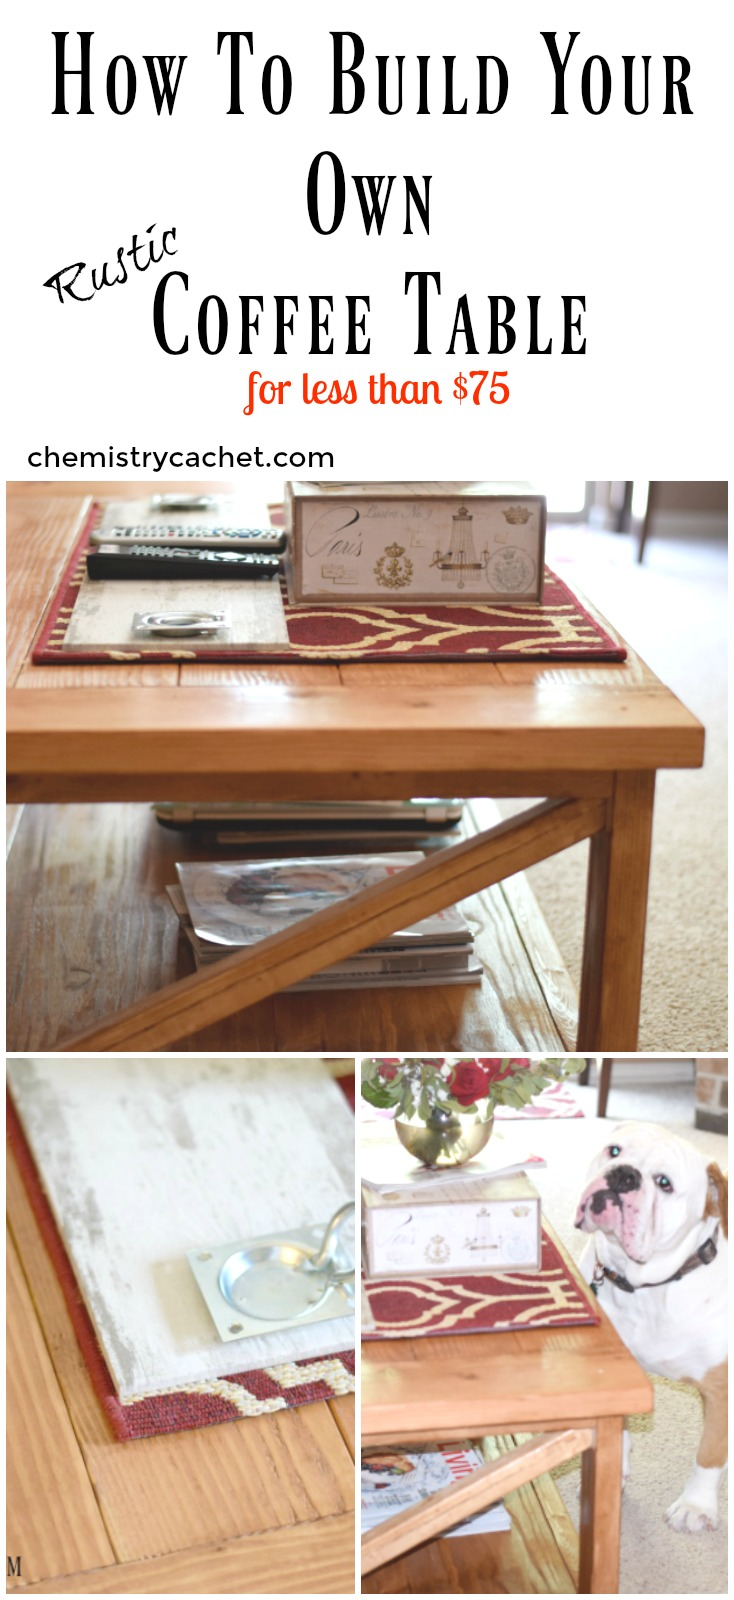 How To Build Your Own RUSTIC Coffee Table For Around 75 On